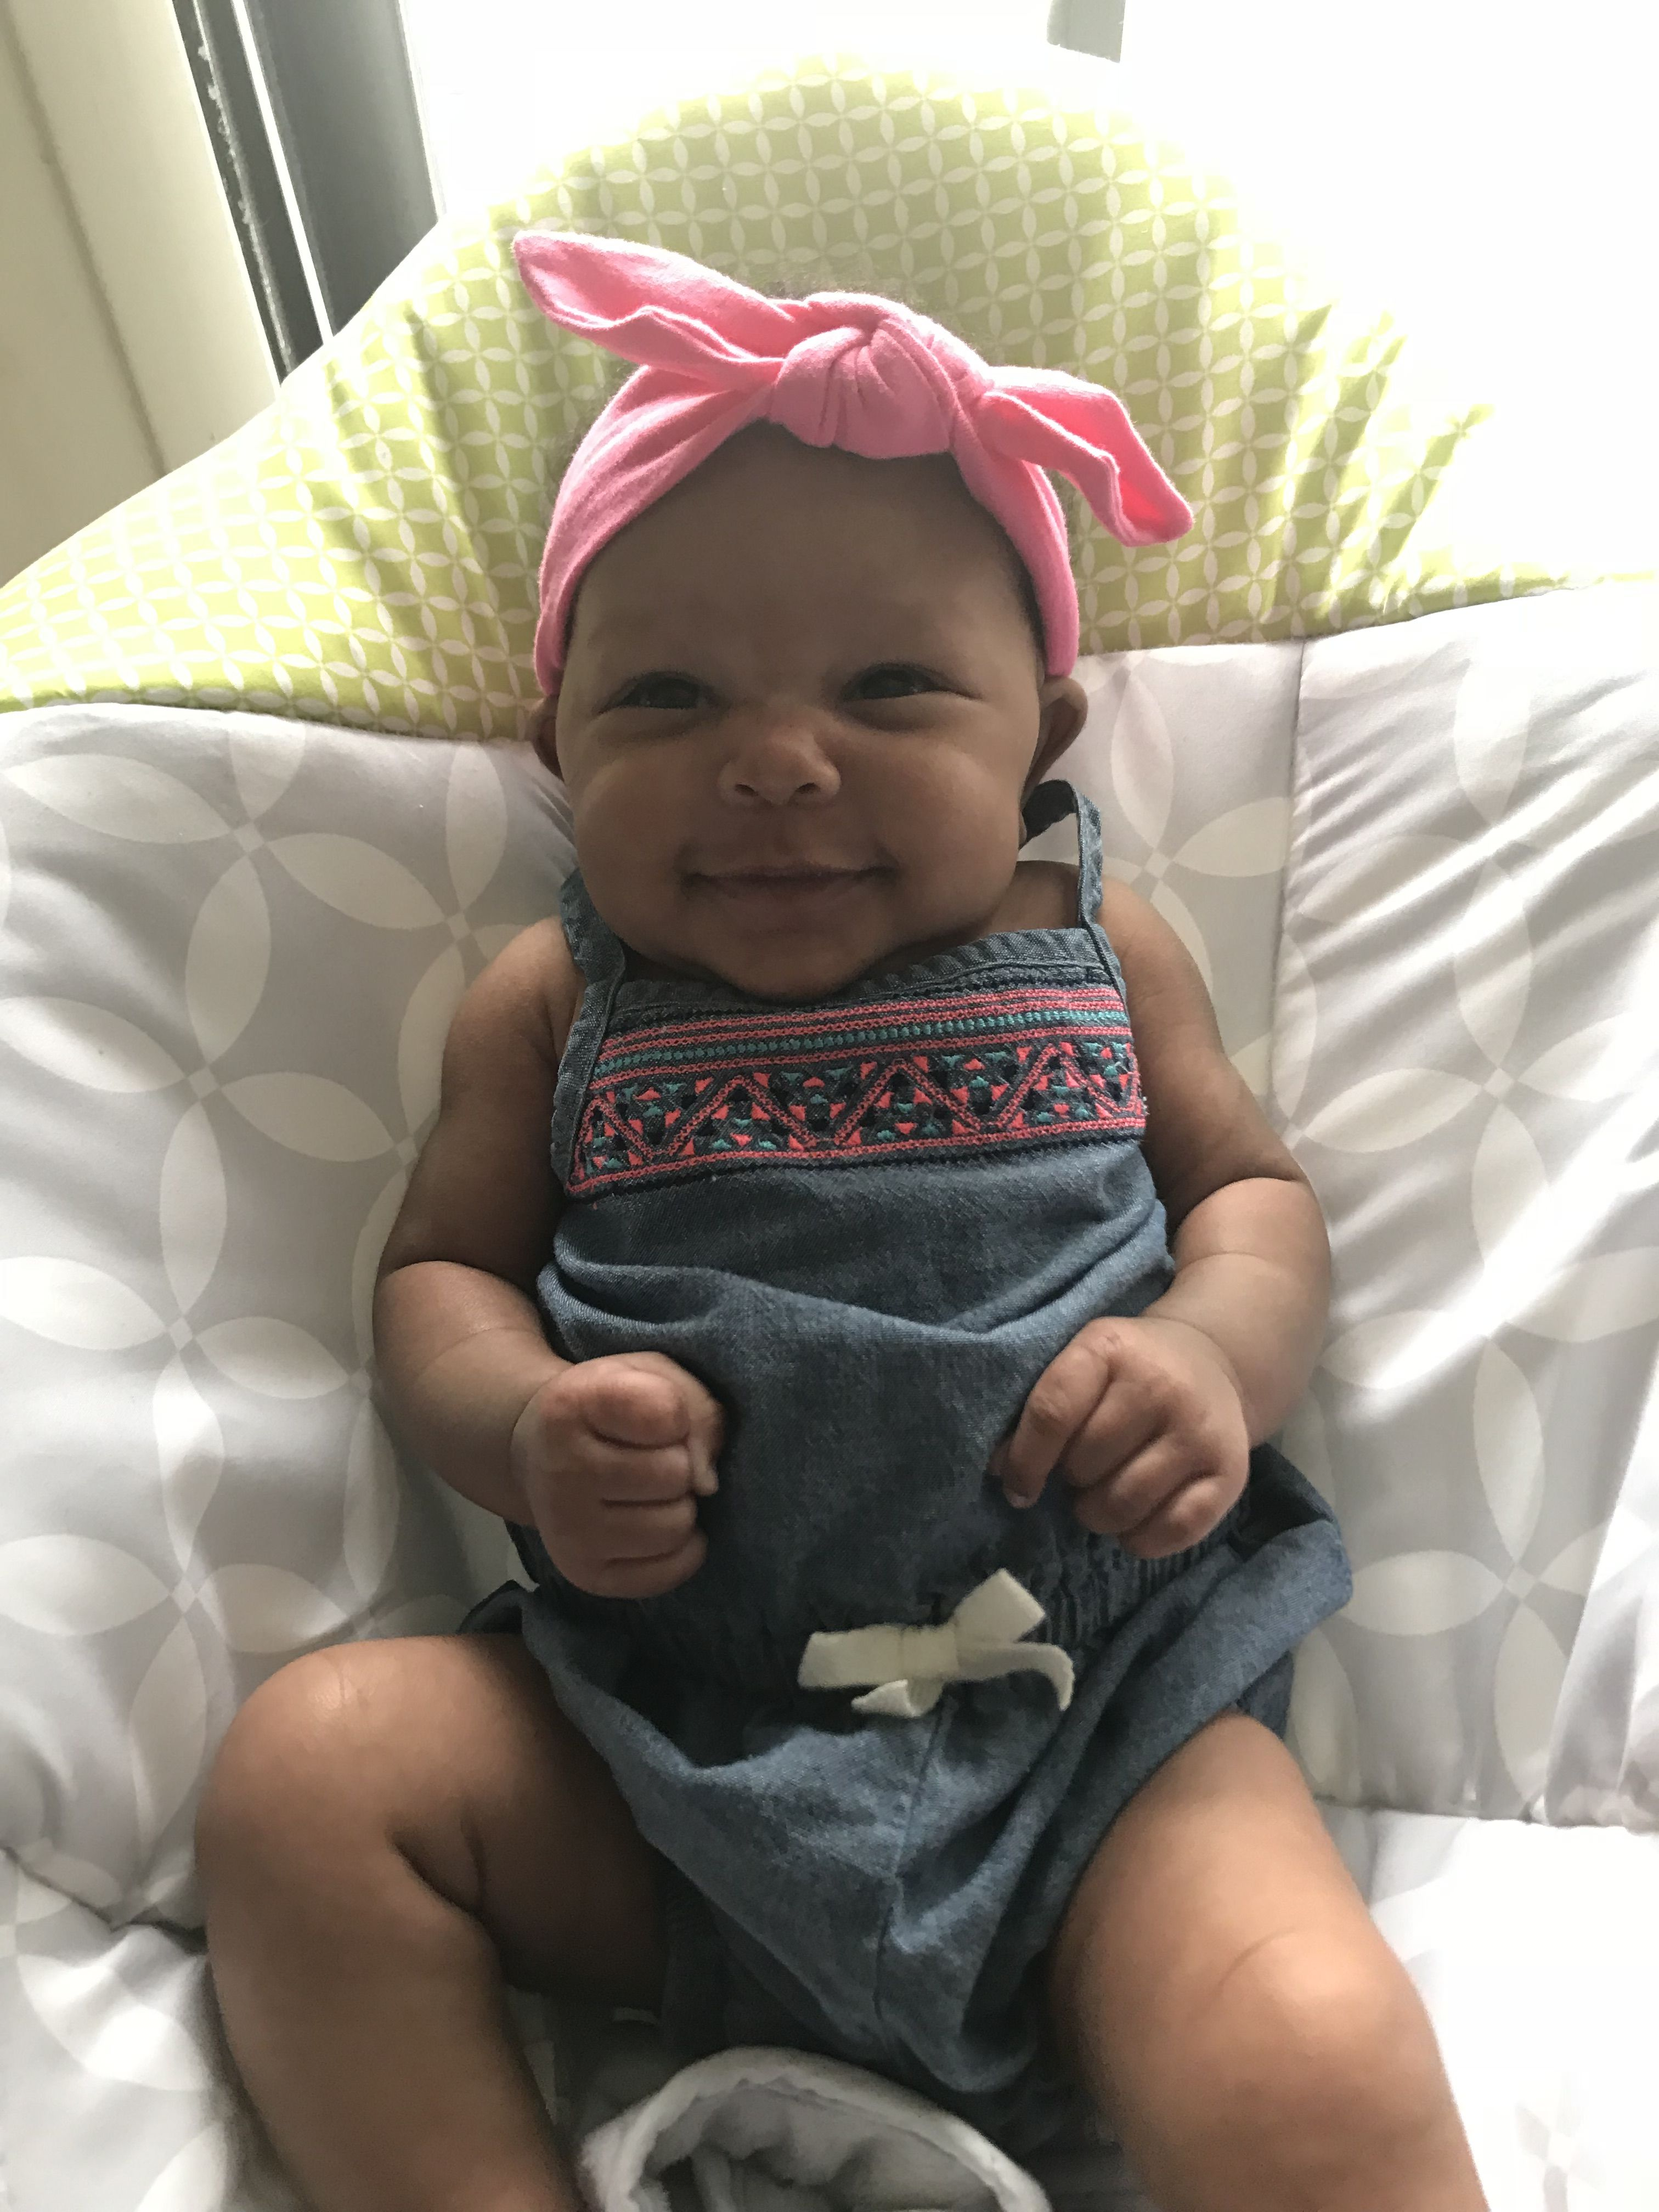 Happy baby, black girls rock, goddaughter, prettiest girl in the world, 2  months old, new born, new baby on the block, smiling baby, June babies